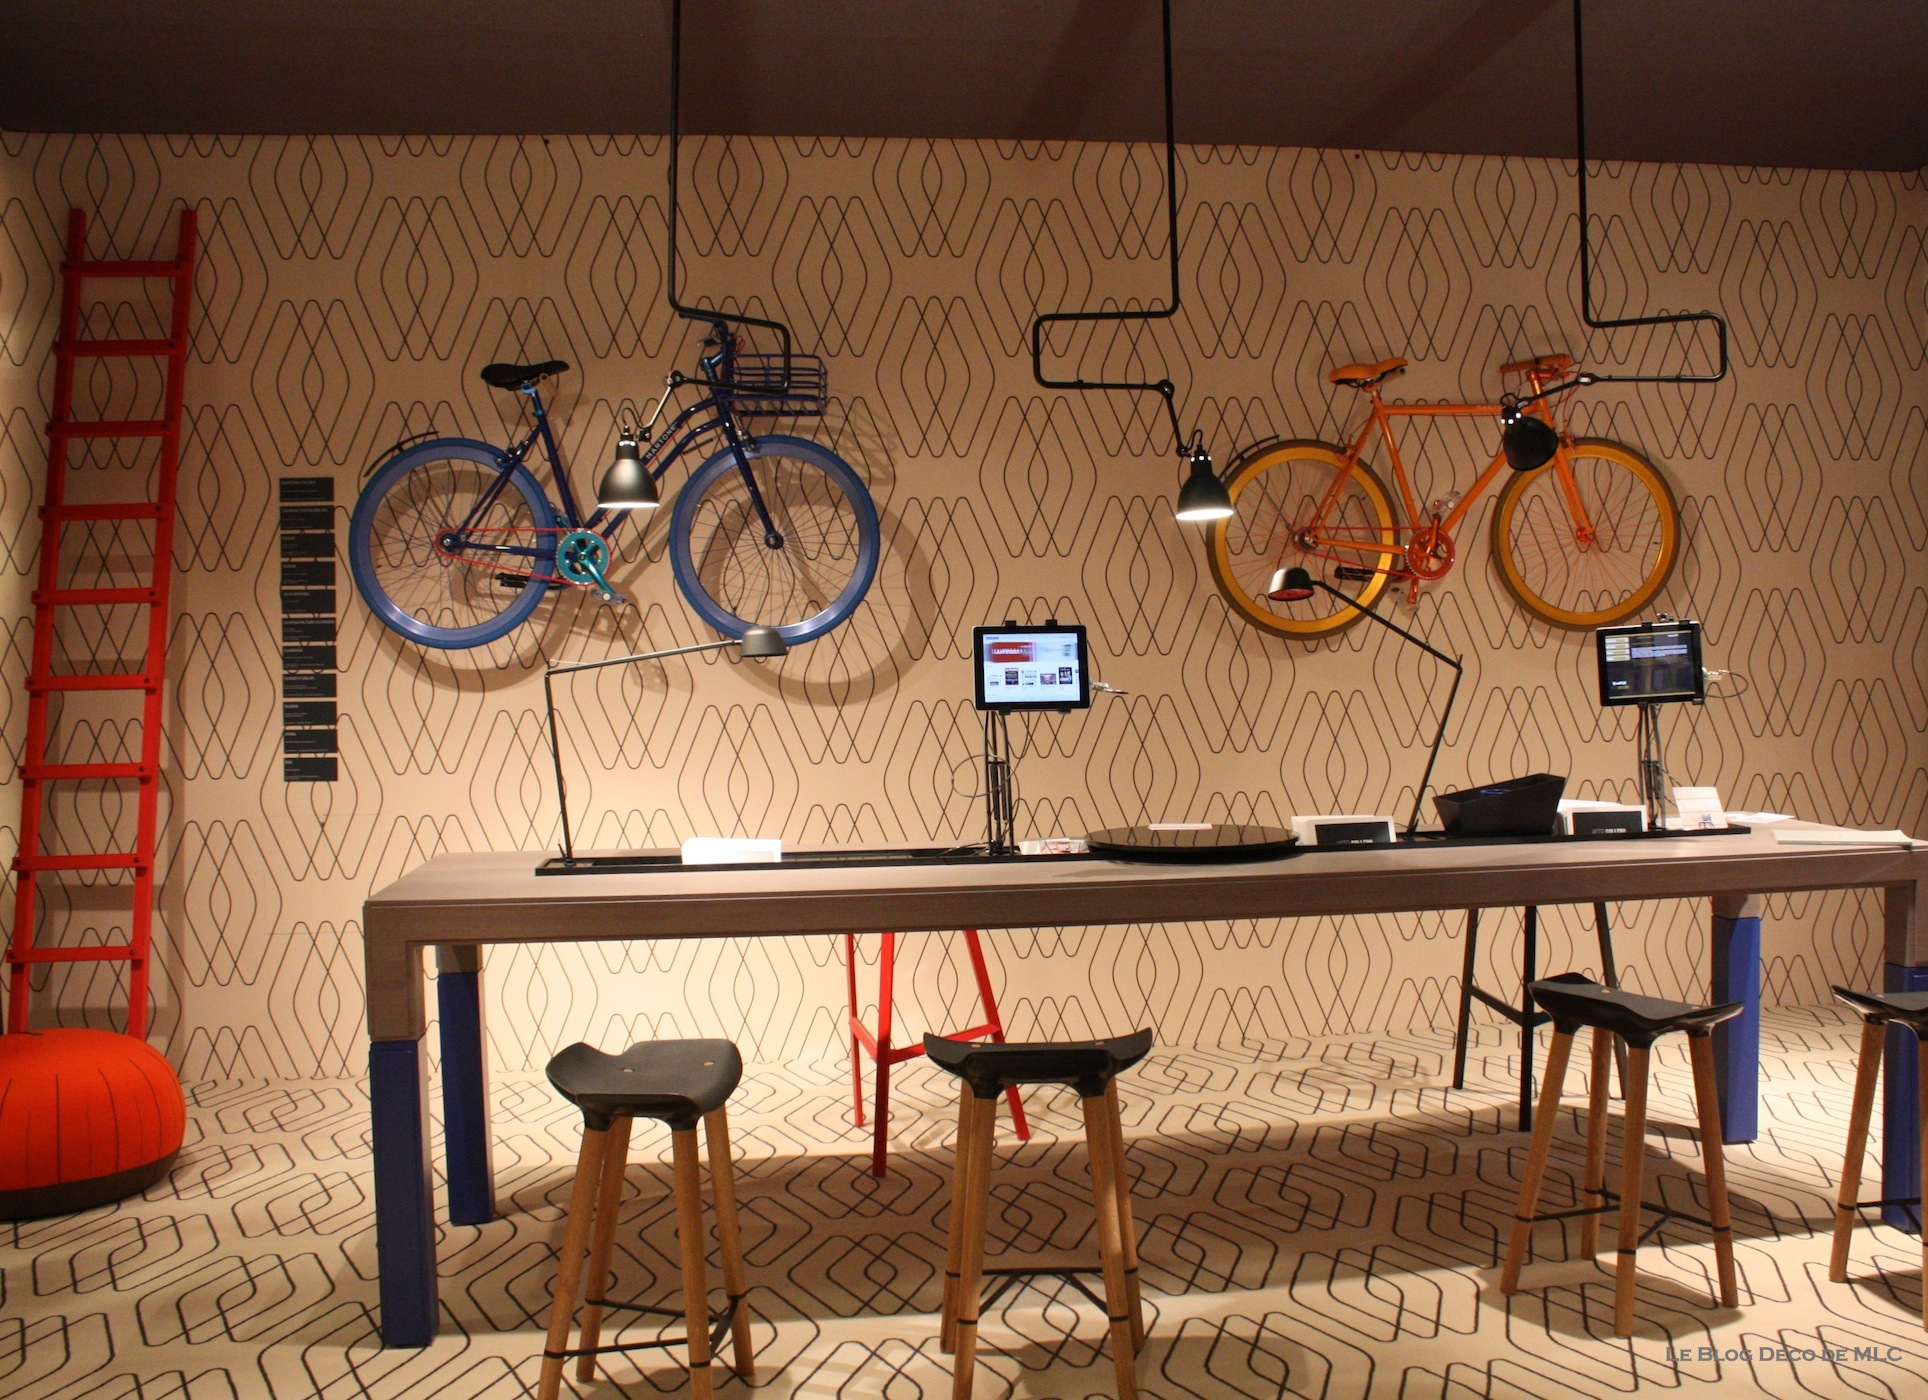 Porte velo appartement porte velo garage gnial best images on pinterest ddi tous ceux qui - Porte velo appartement ...